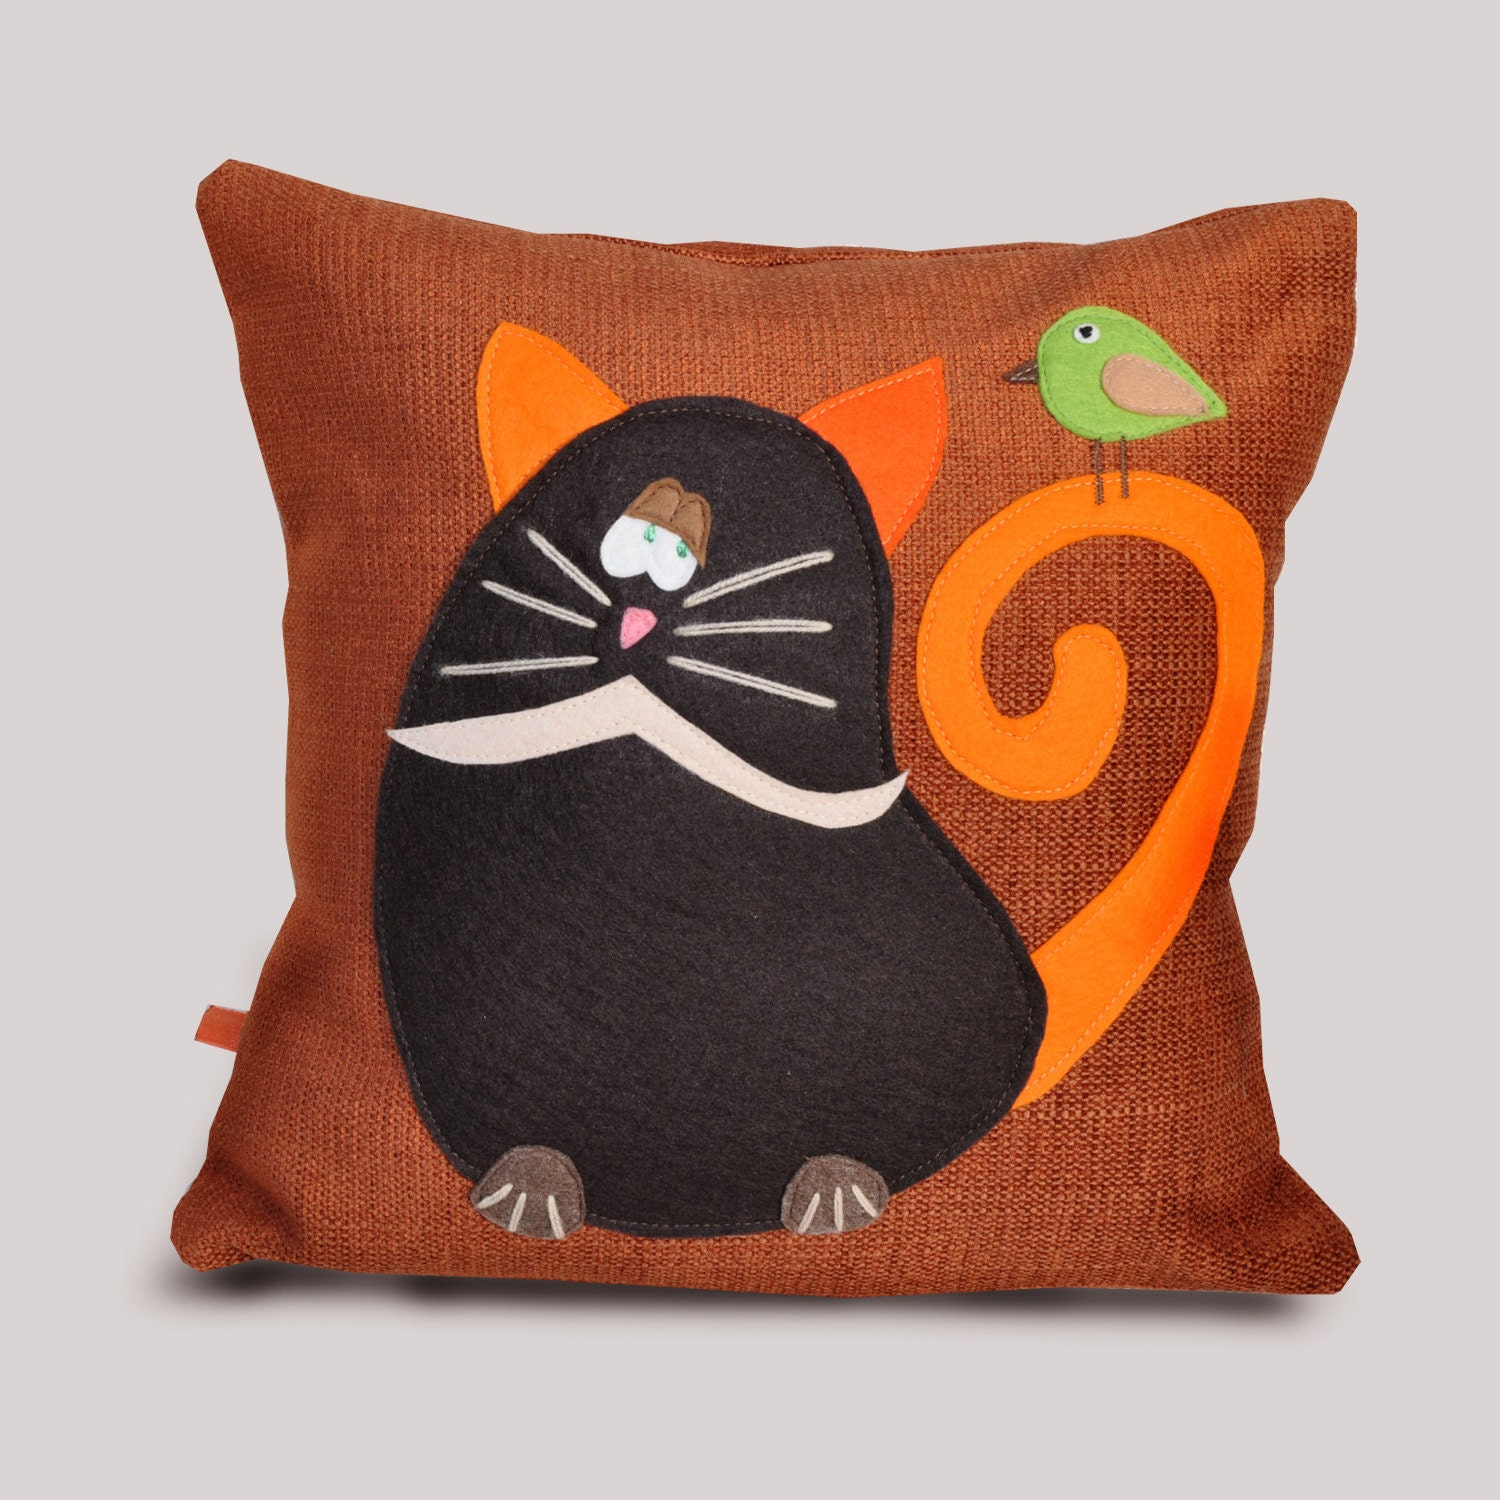 Decorative pillow cat pillow bird funny pillow original